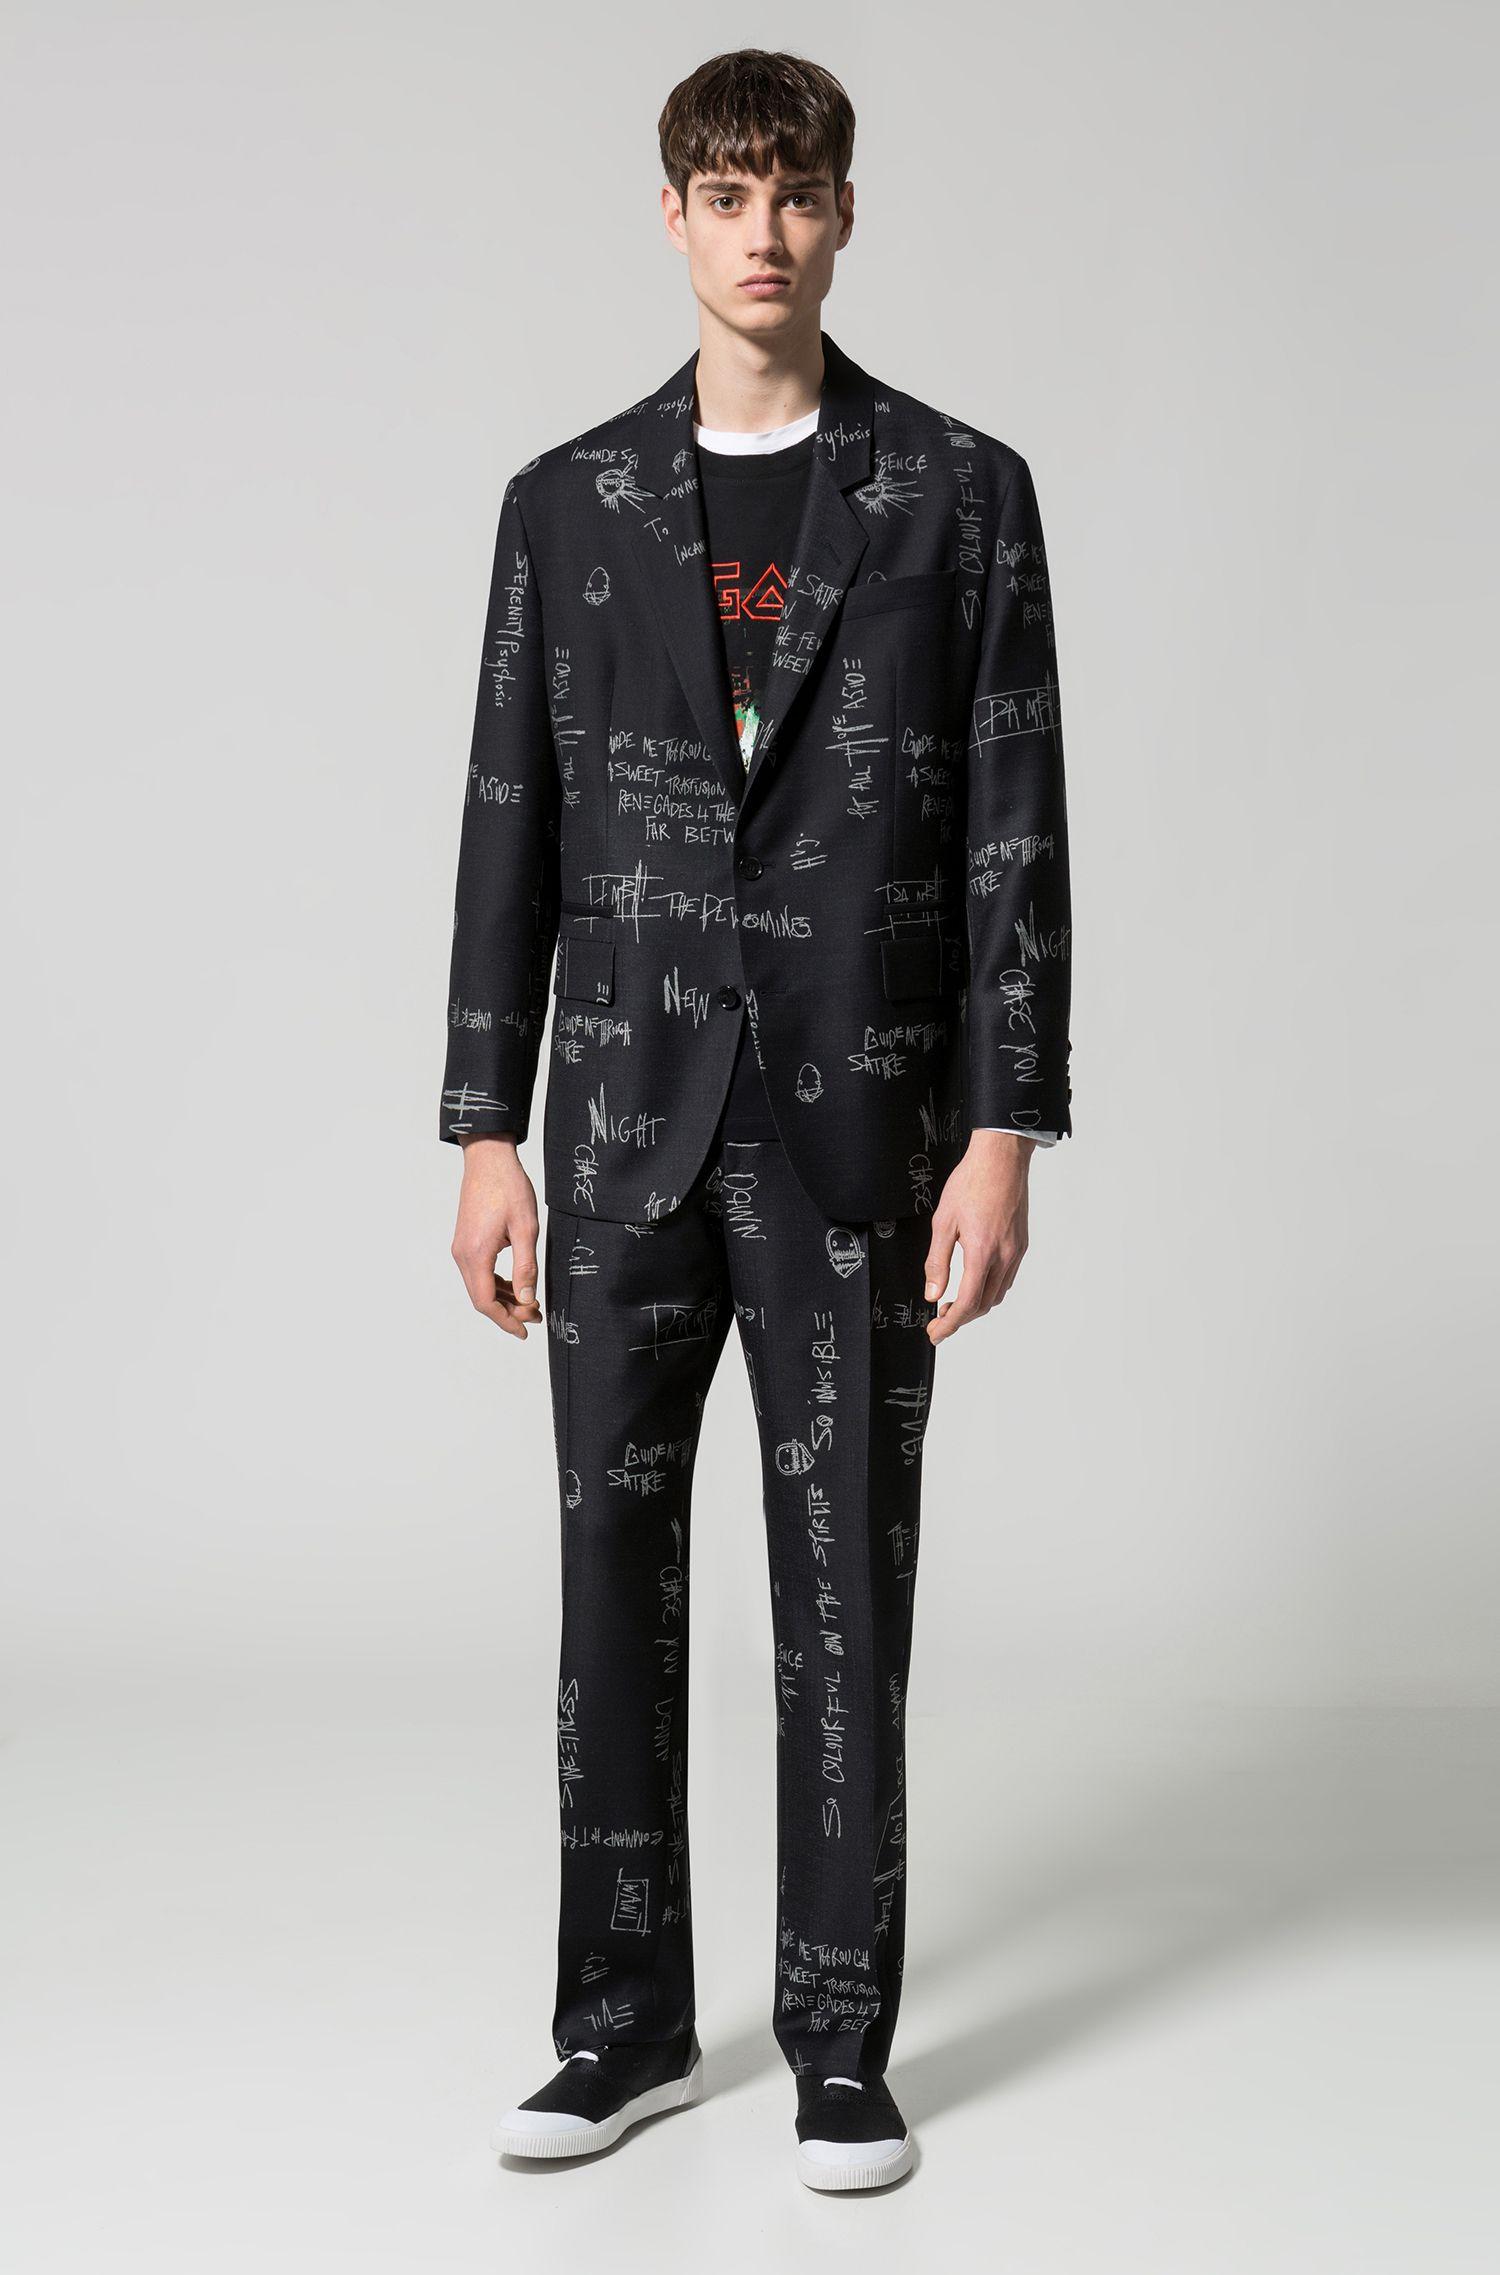 Scribble-Print Virgin Wool Suit, Oversized Fit | Ursus/Faris, Black